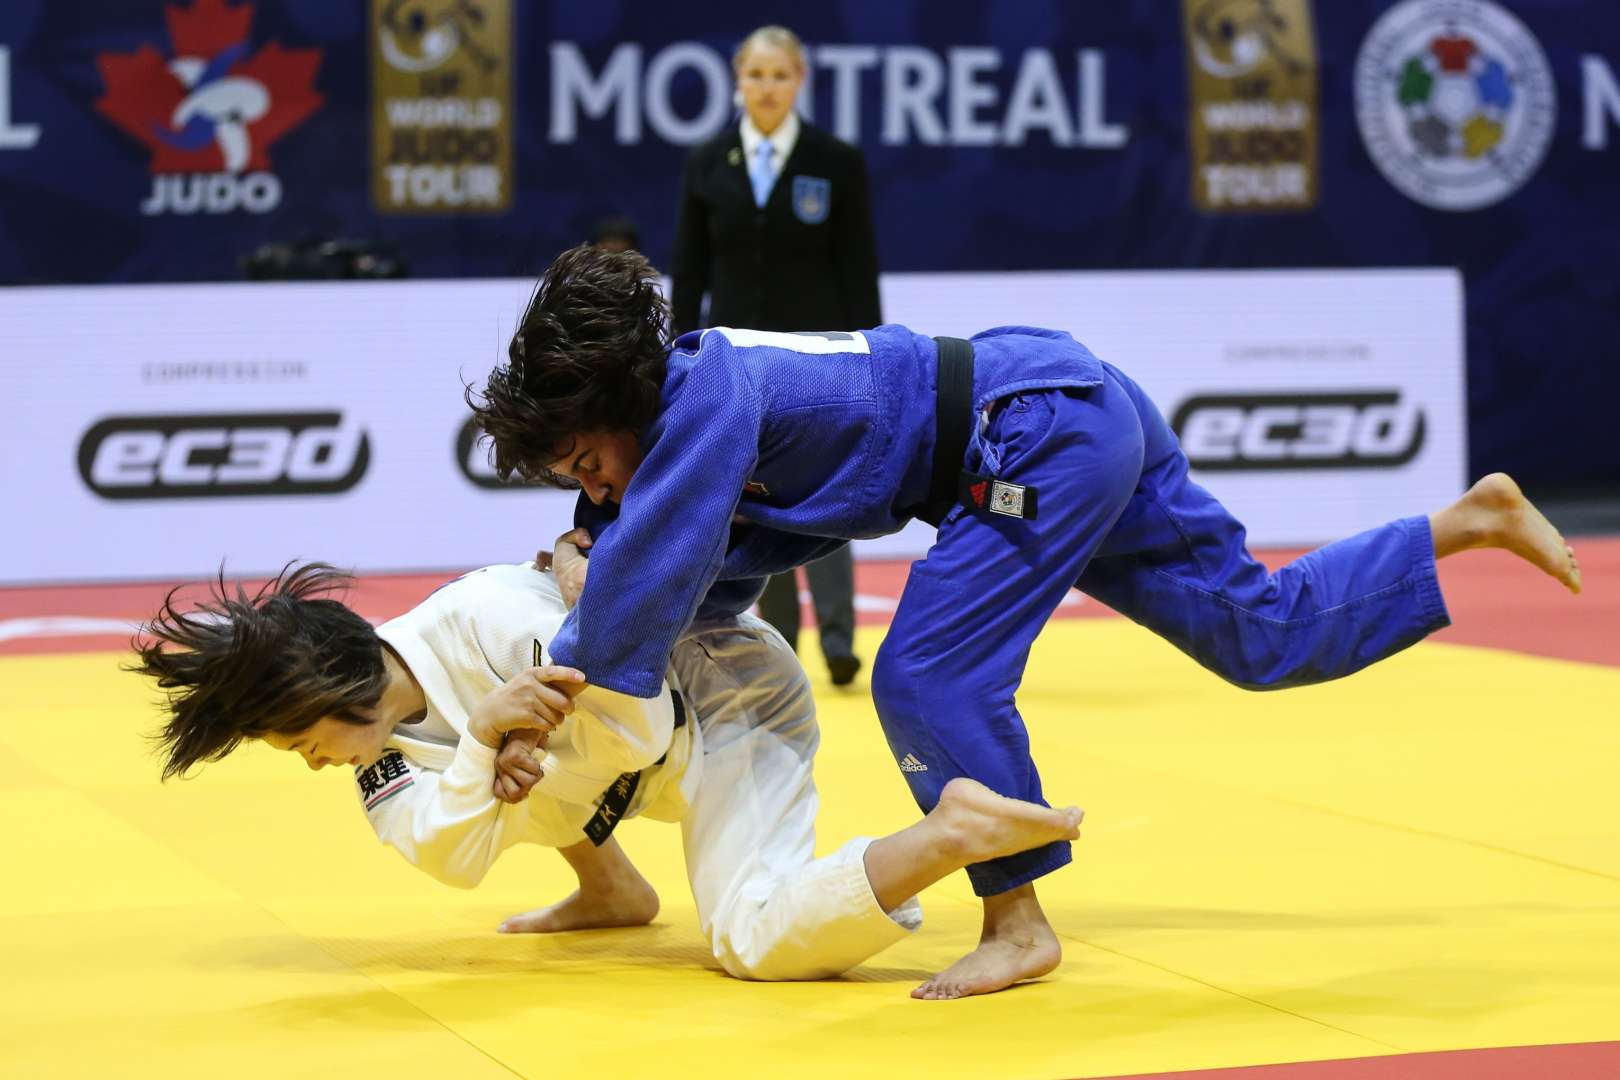 JudoMontreal - DAY 1 Results / IJF org